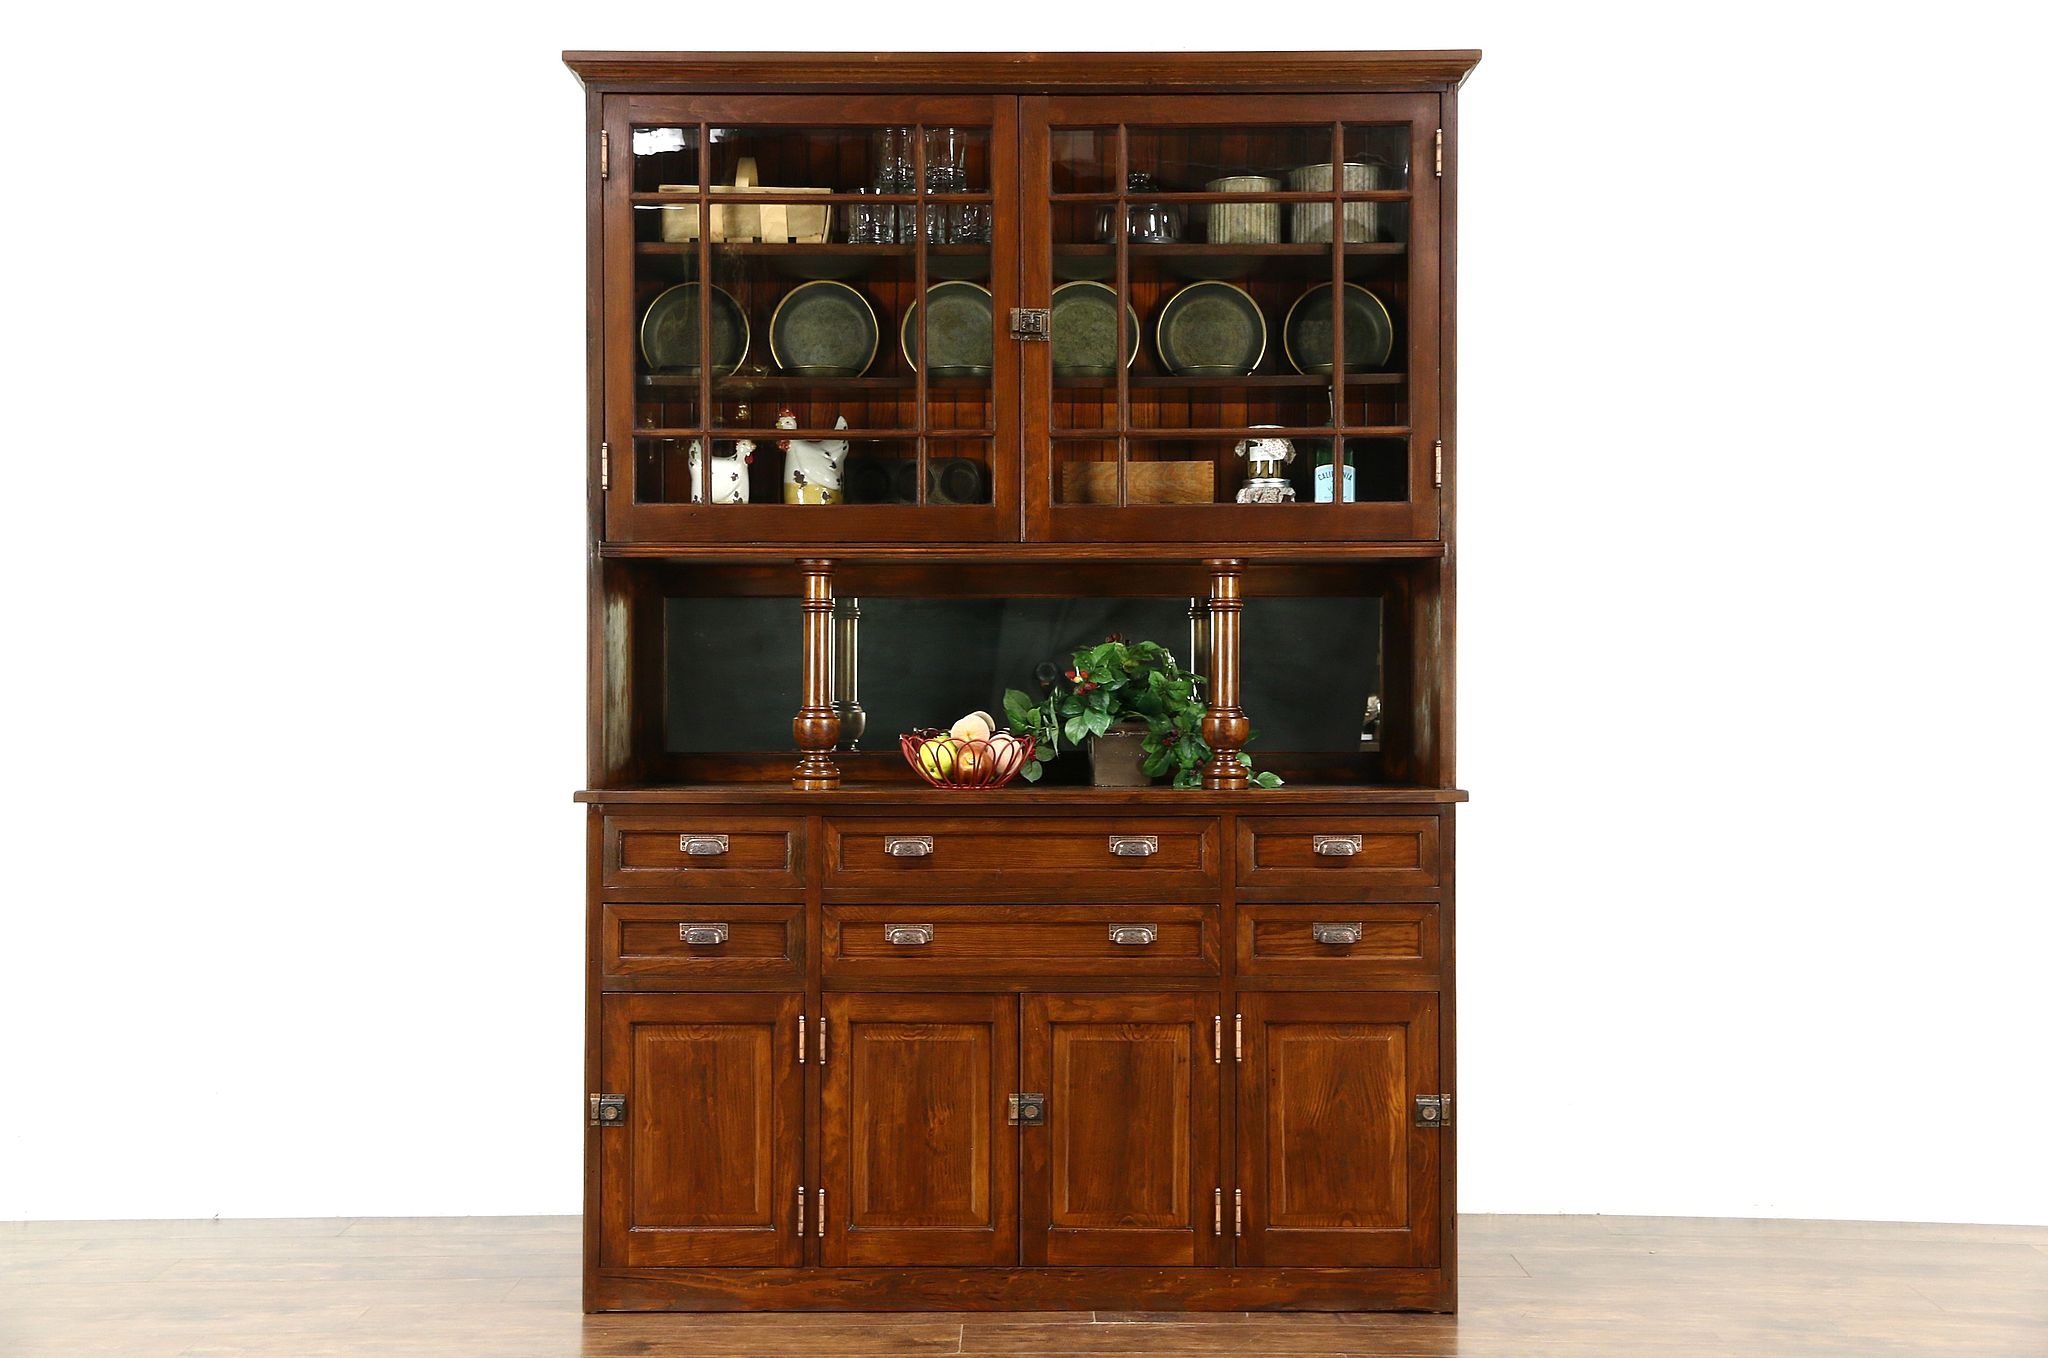 Sold victorian pine antique 1890 pantry cupboard or for 1890 kitchen cabinets